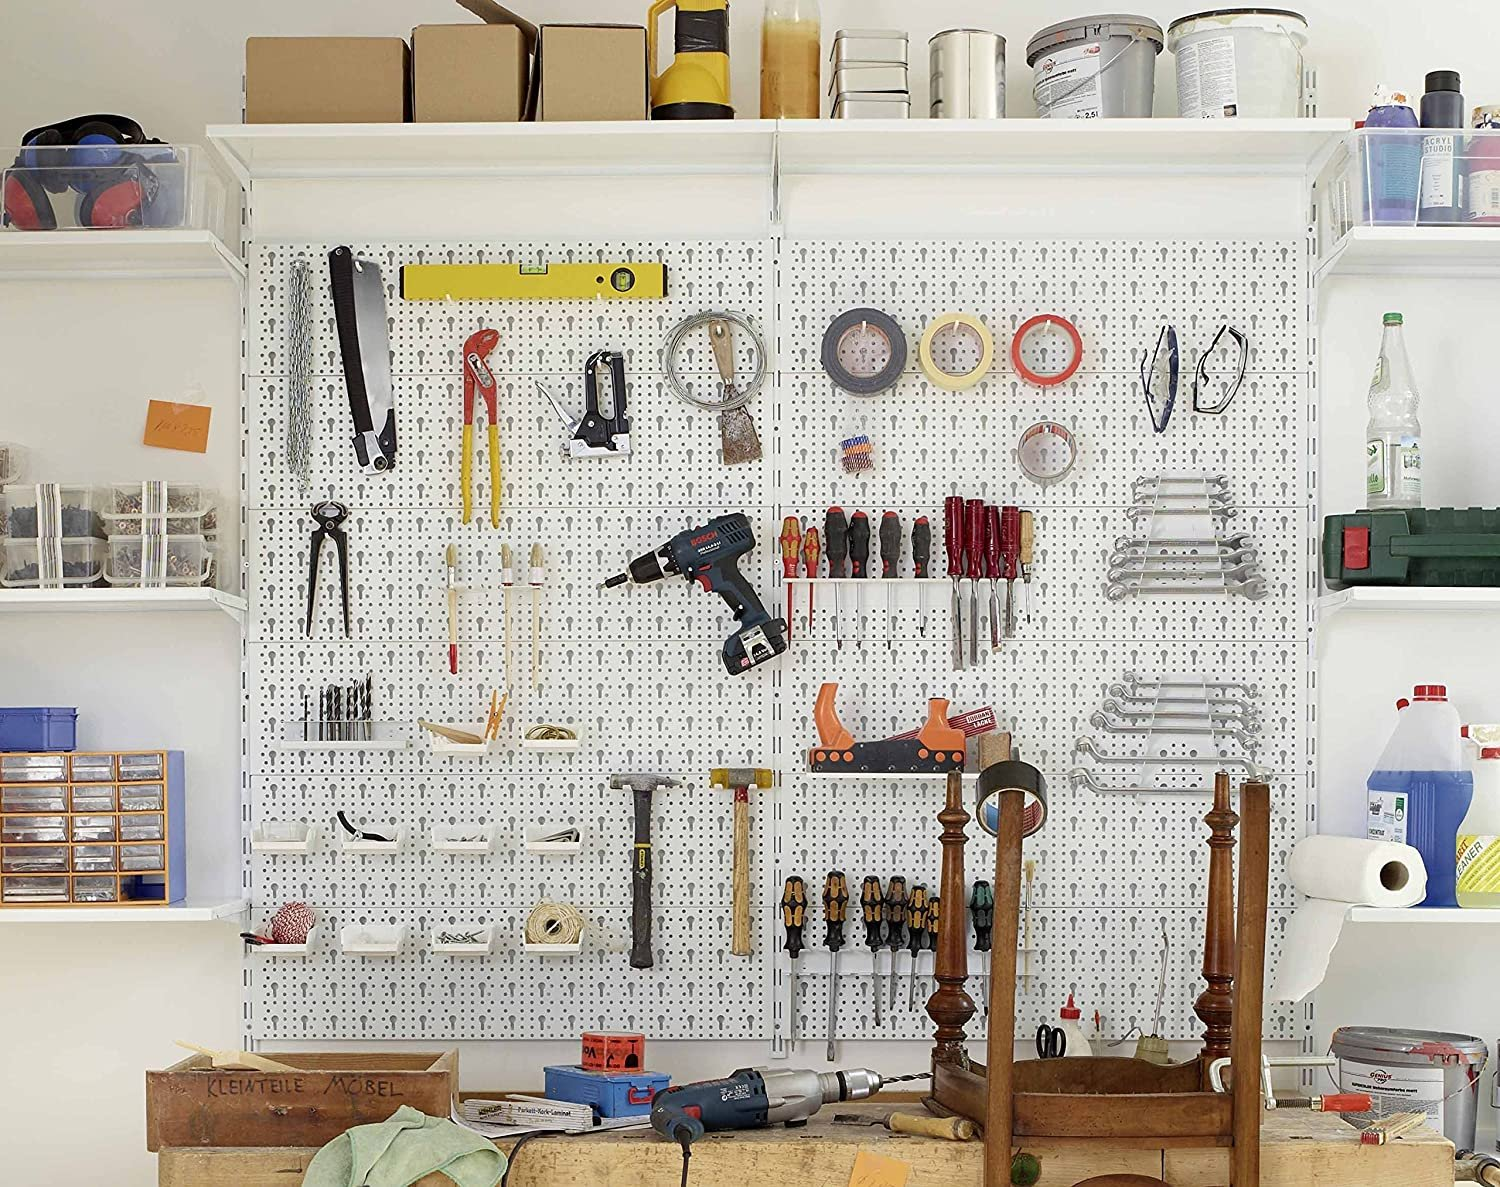 This is The pegboard